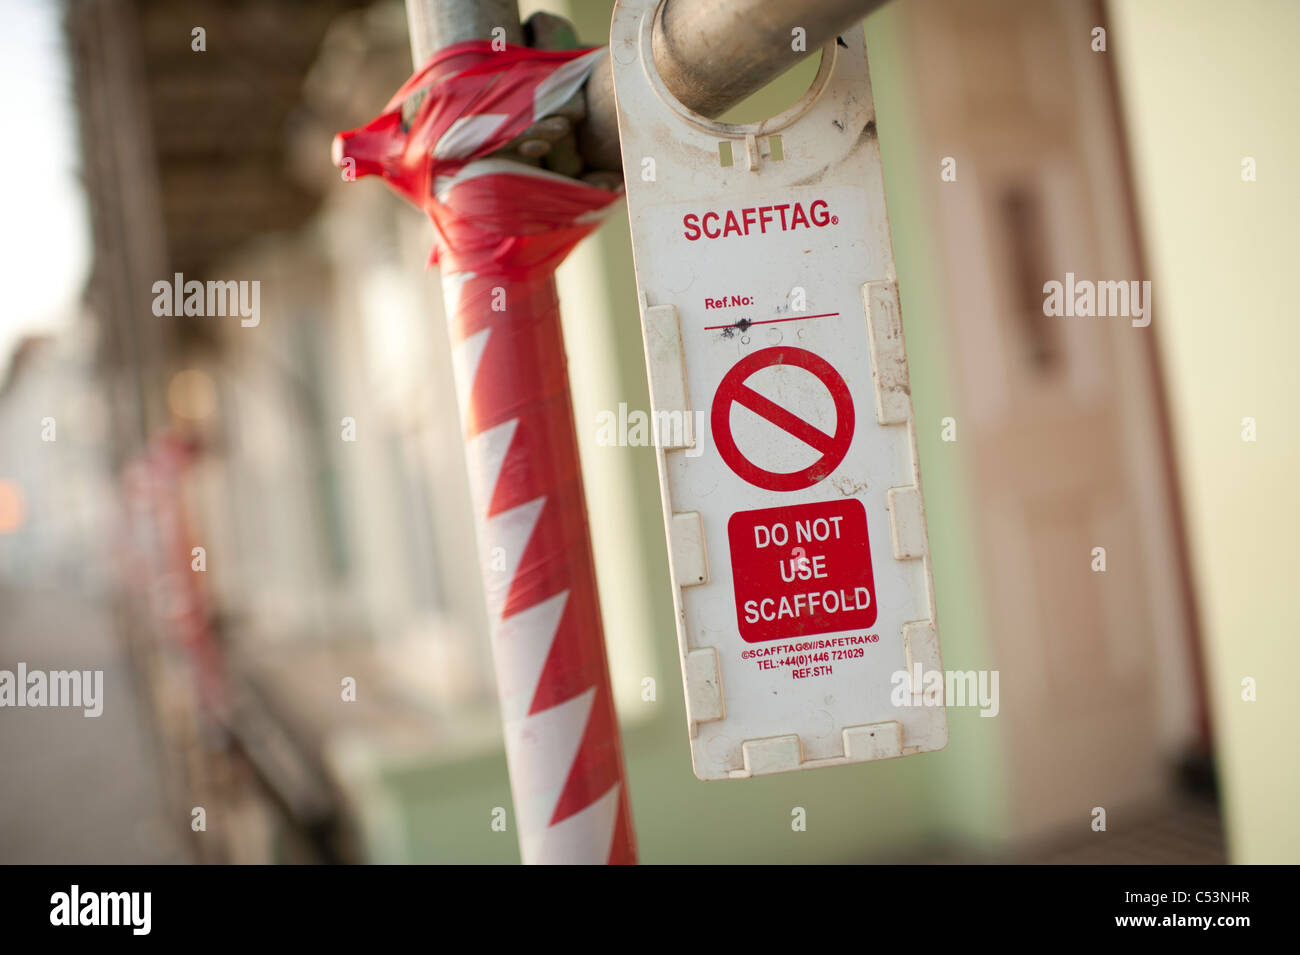 Scafftag - a warning danger unsafe Do Not Use scaffold tag on scaffolding, UK - Stock Image